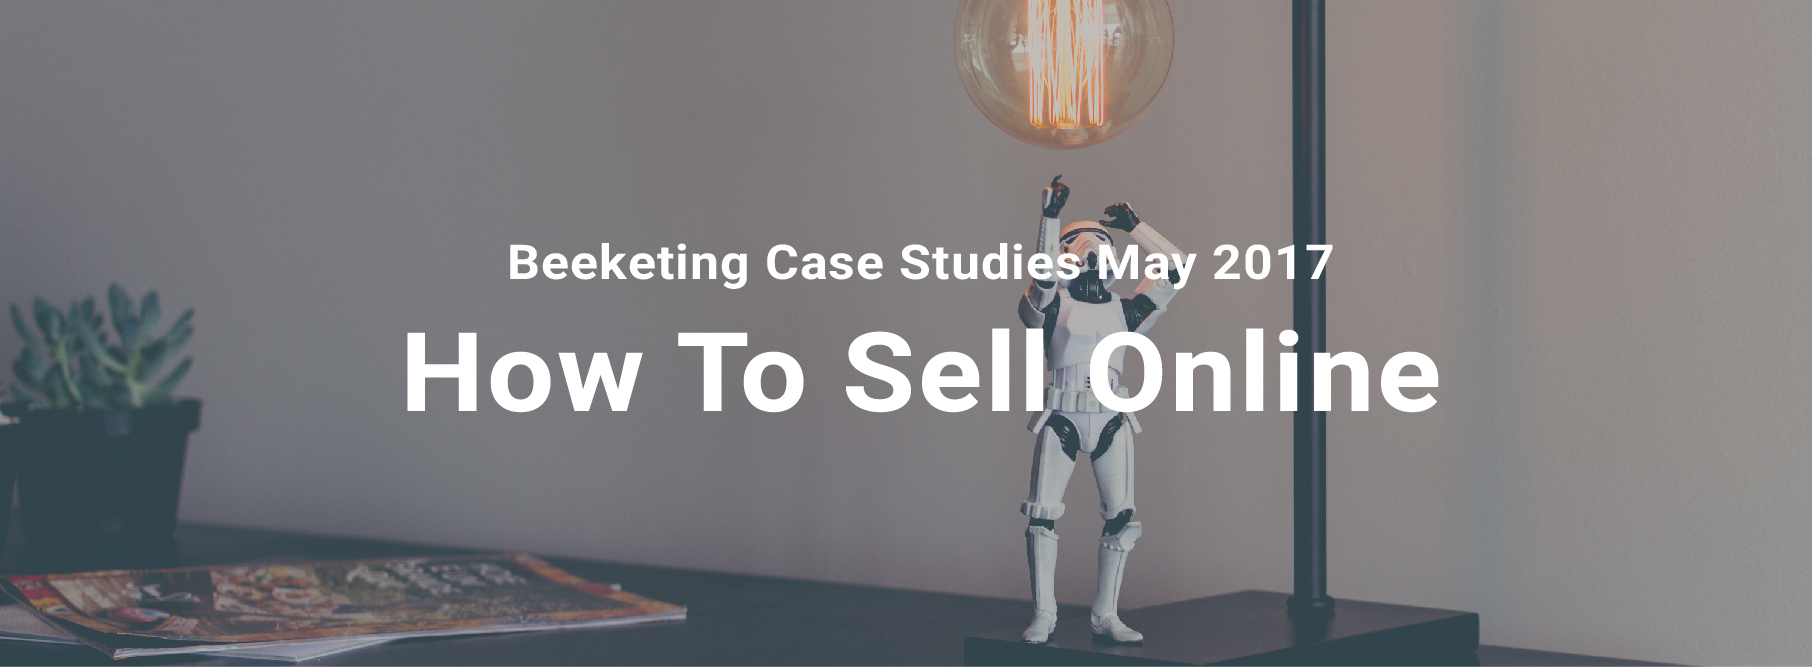 case study beeketing featured image